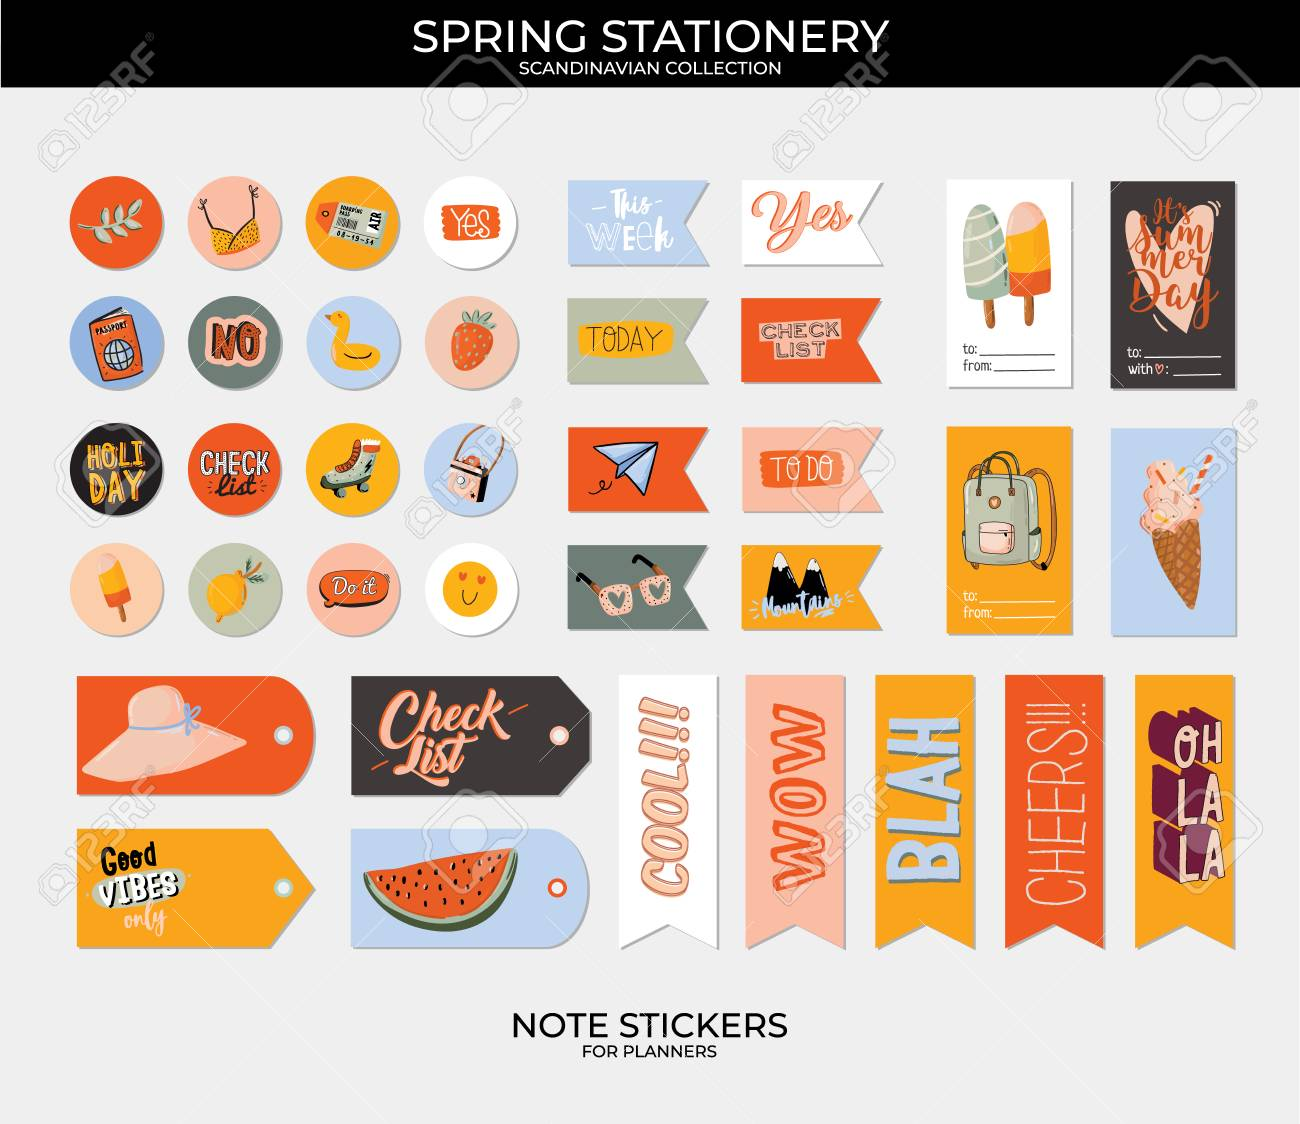 Collection of weekly and daily planners, sheet for notes and to do lists with summer illustrations and lettering. Template for agenda, planners, check lists, and other stationery. Vector - 122695692